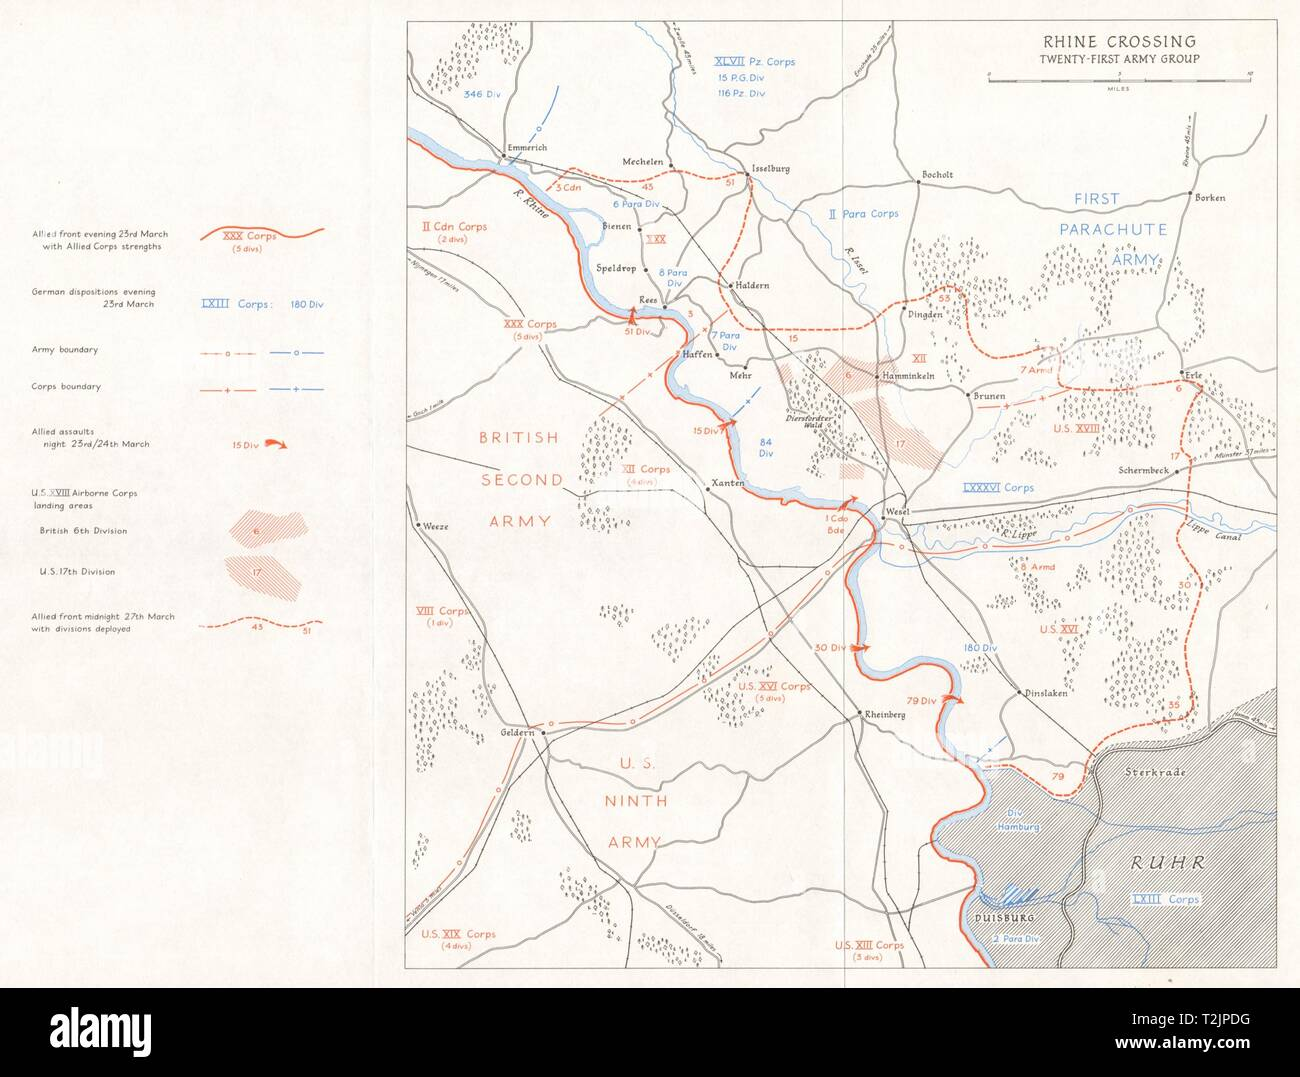 Allies advance. Rhine Crossing, 21st Army Group March 1945. Germany WW2 1968 map - Stock Image